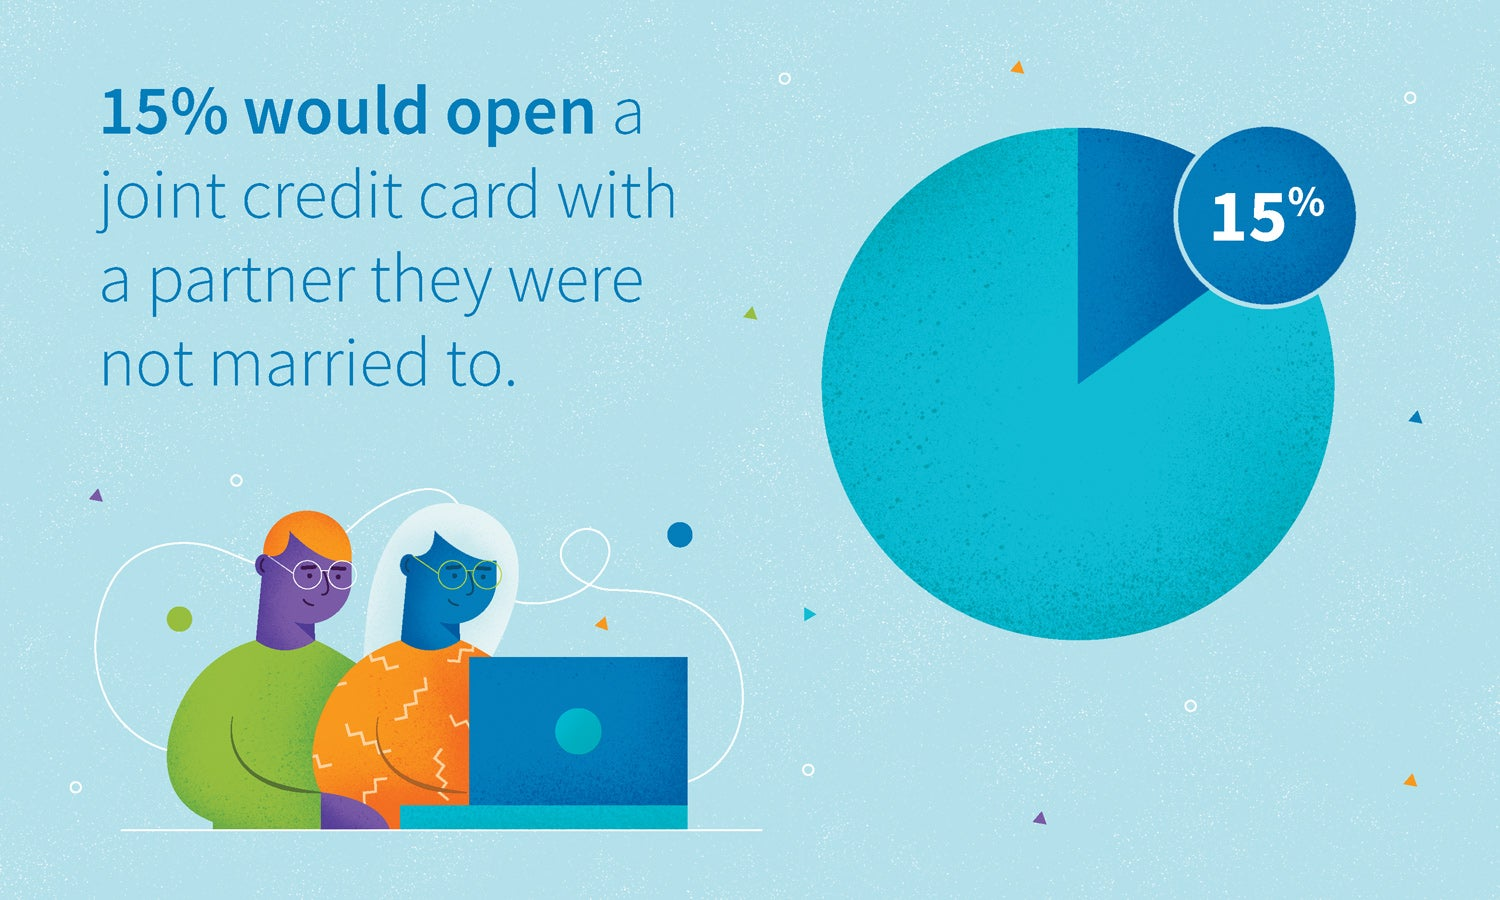 15 % would open a joint credit card with a partner they were not married to